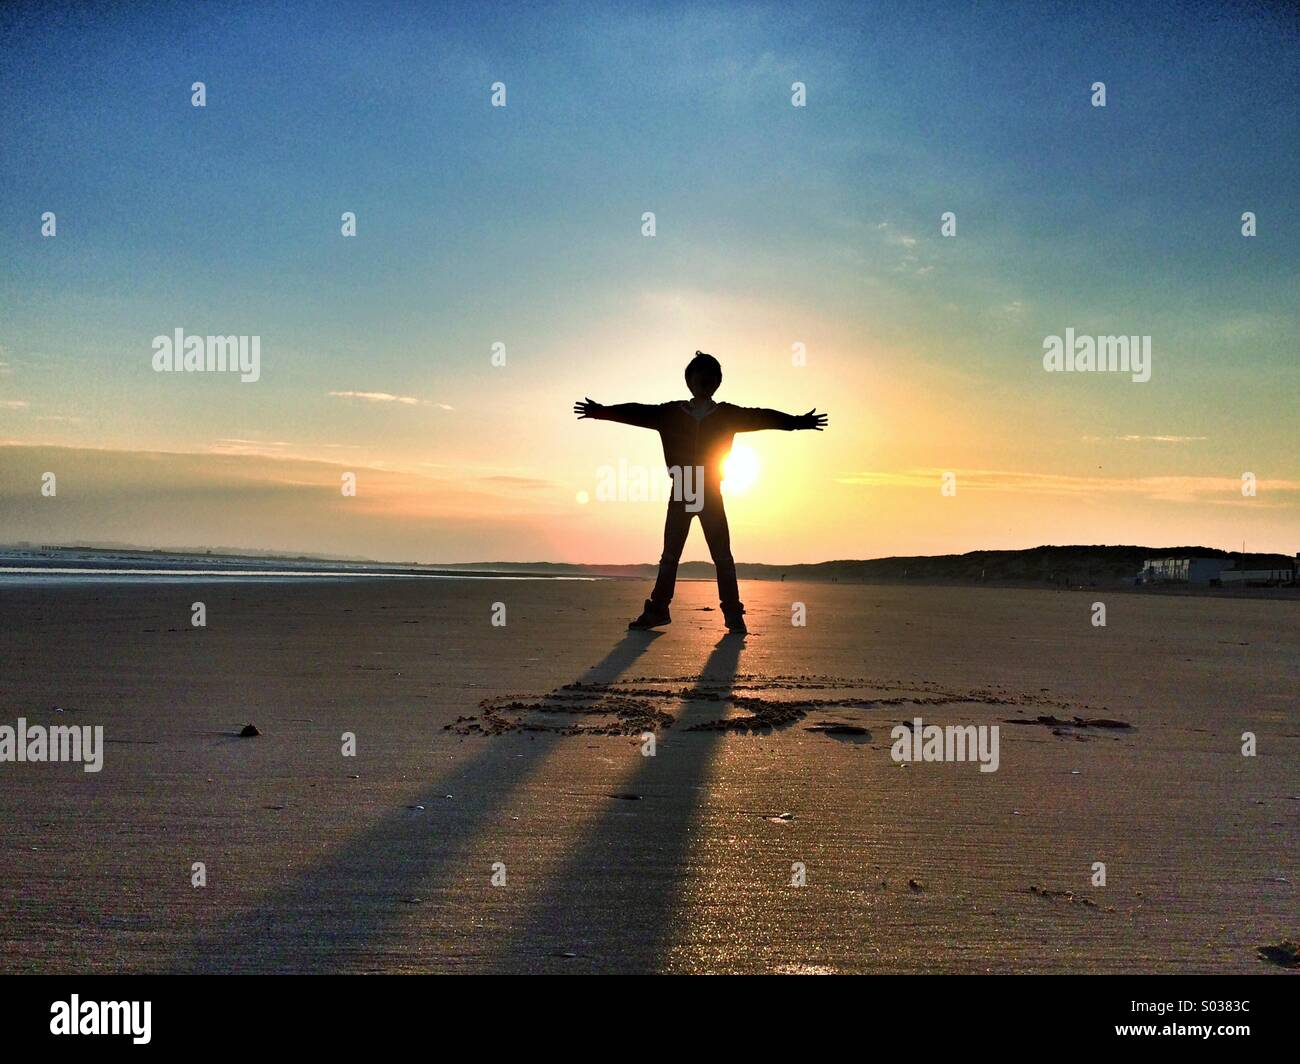 Sunset boy - Stock Image